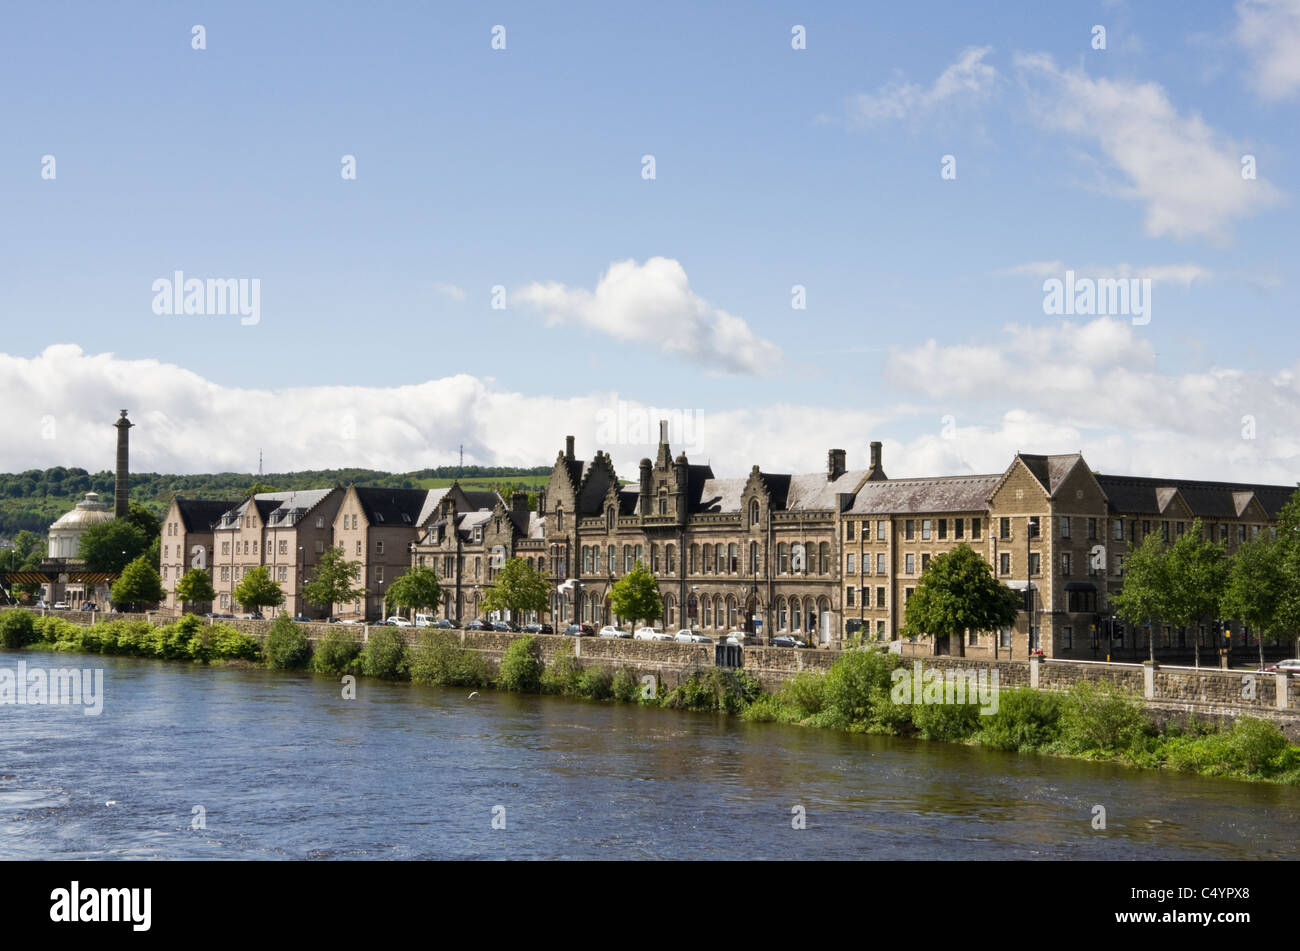 View across River Tay to waterfront buildings and Fergusson Gallery. Perth, Perthshire, Scotland, UK, Britain - Stock Image